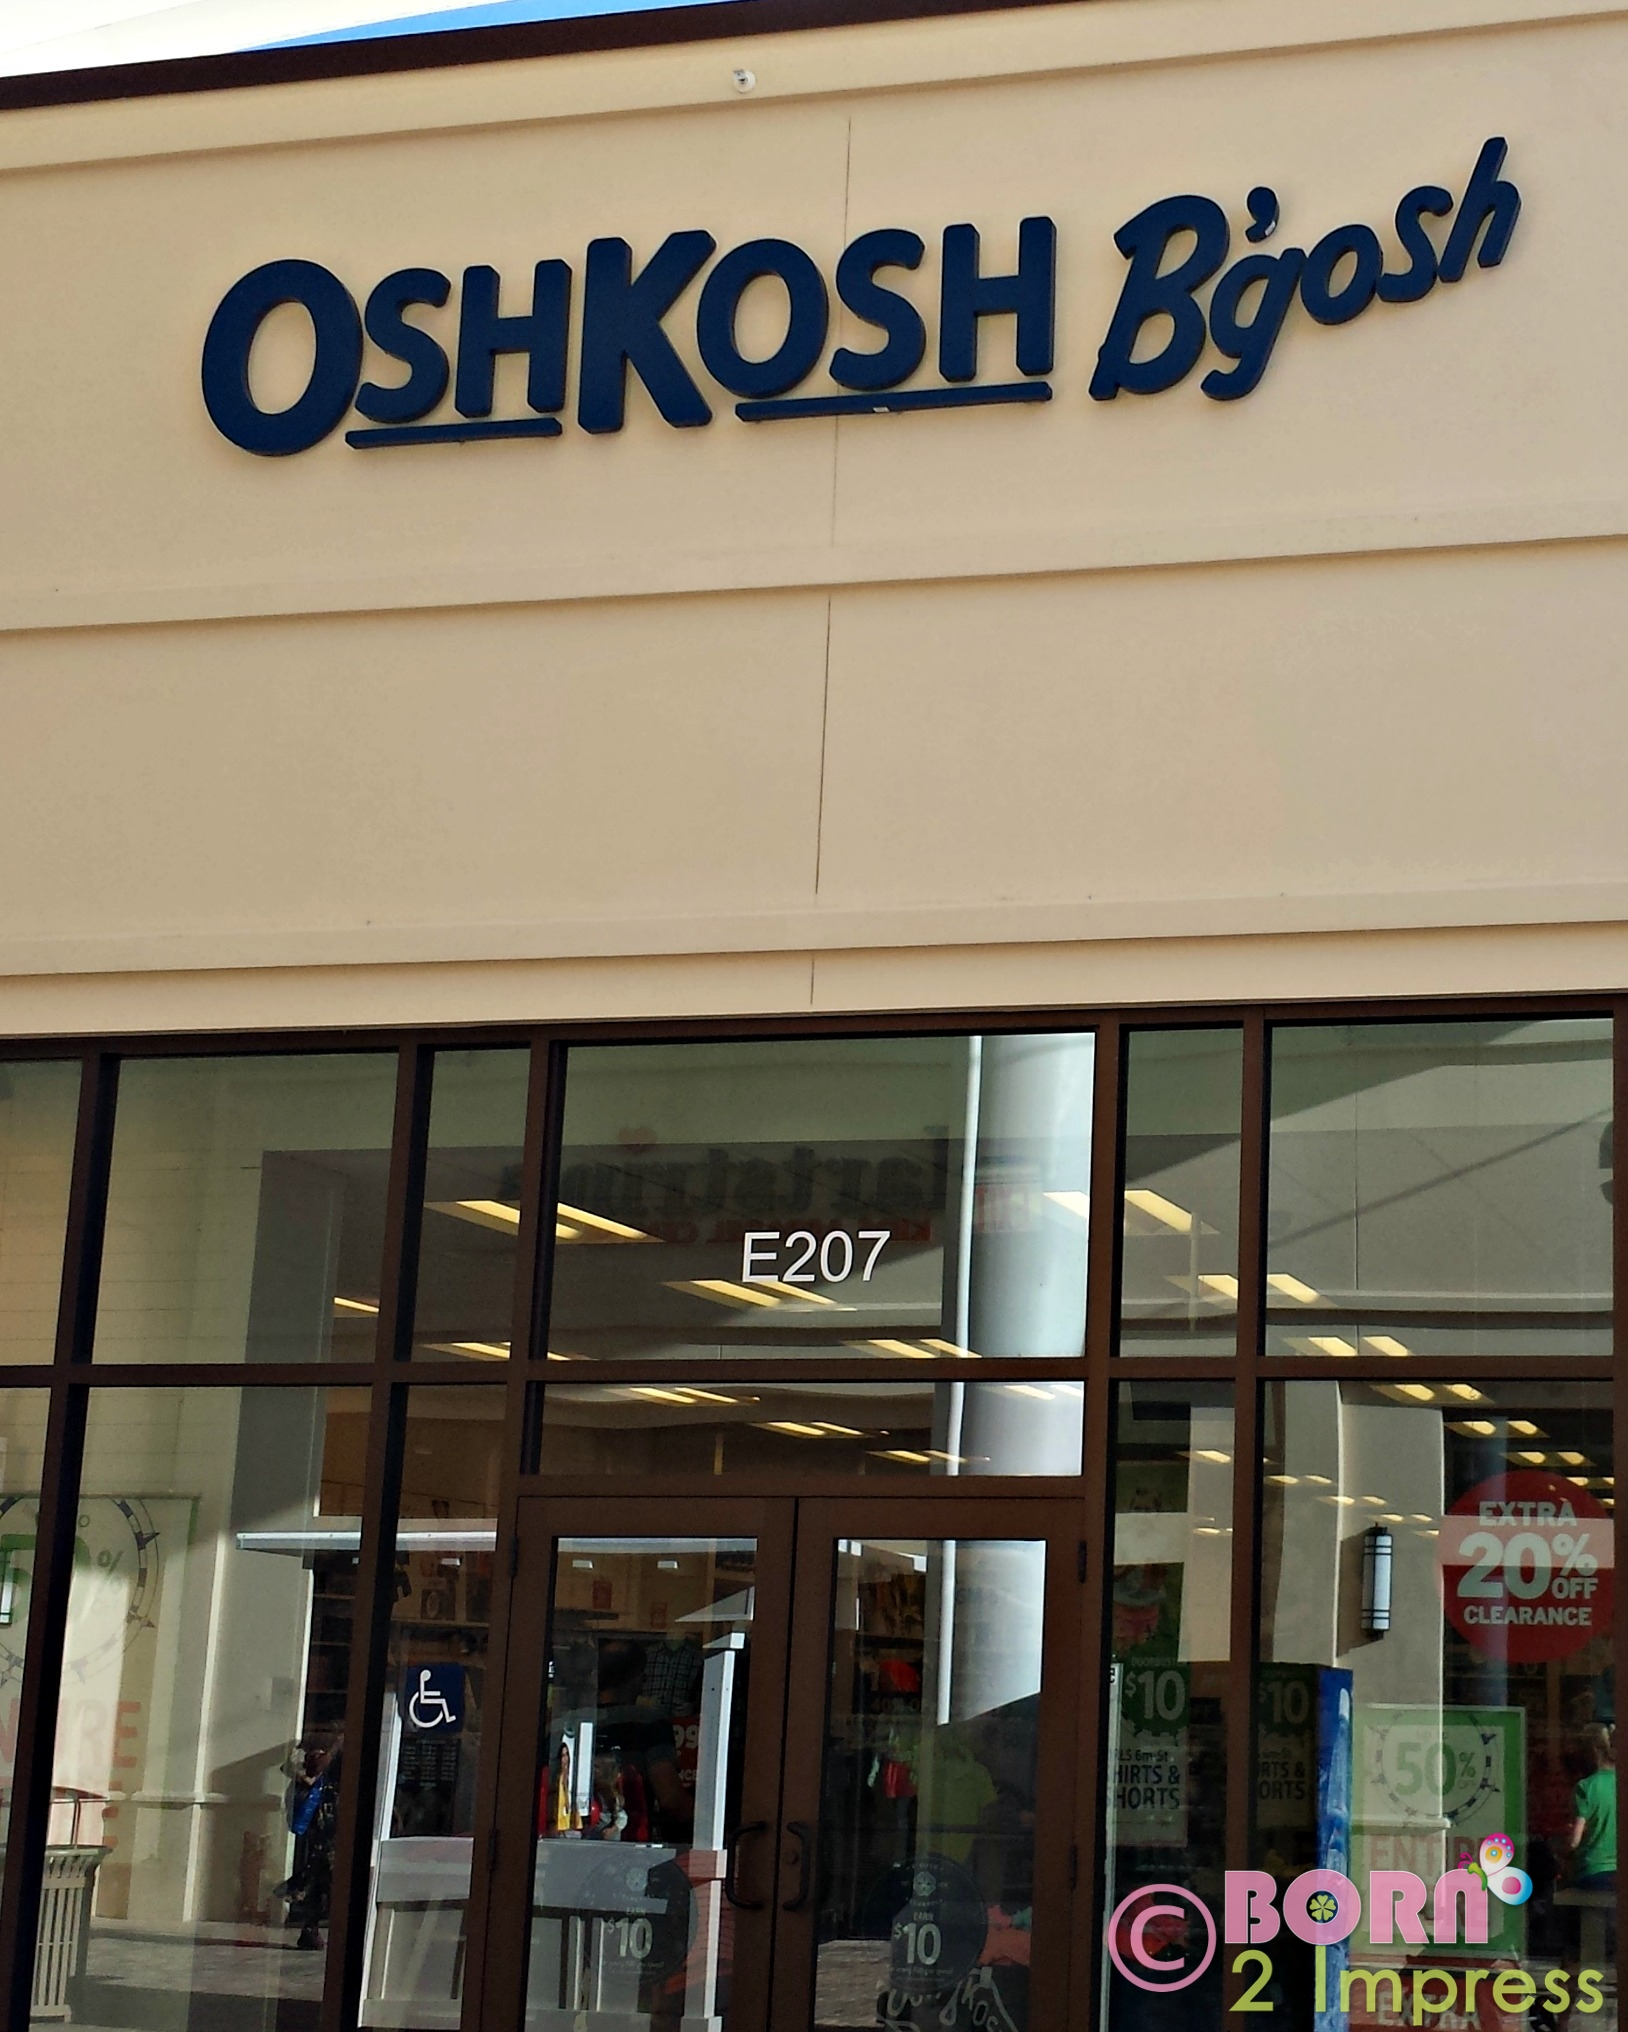 Gift ideas for every kid on your list starting at just $ now in store at OshKosh! *Exclusions apply. See store associate for details. Valid 12/4 through 12/